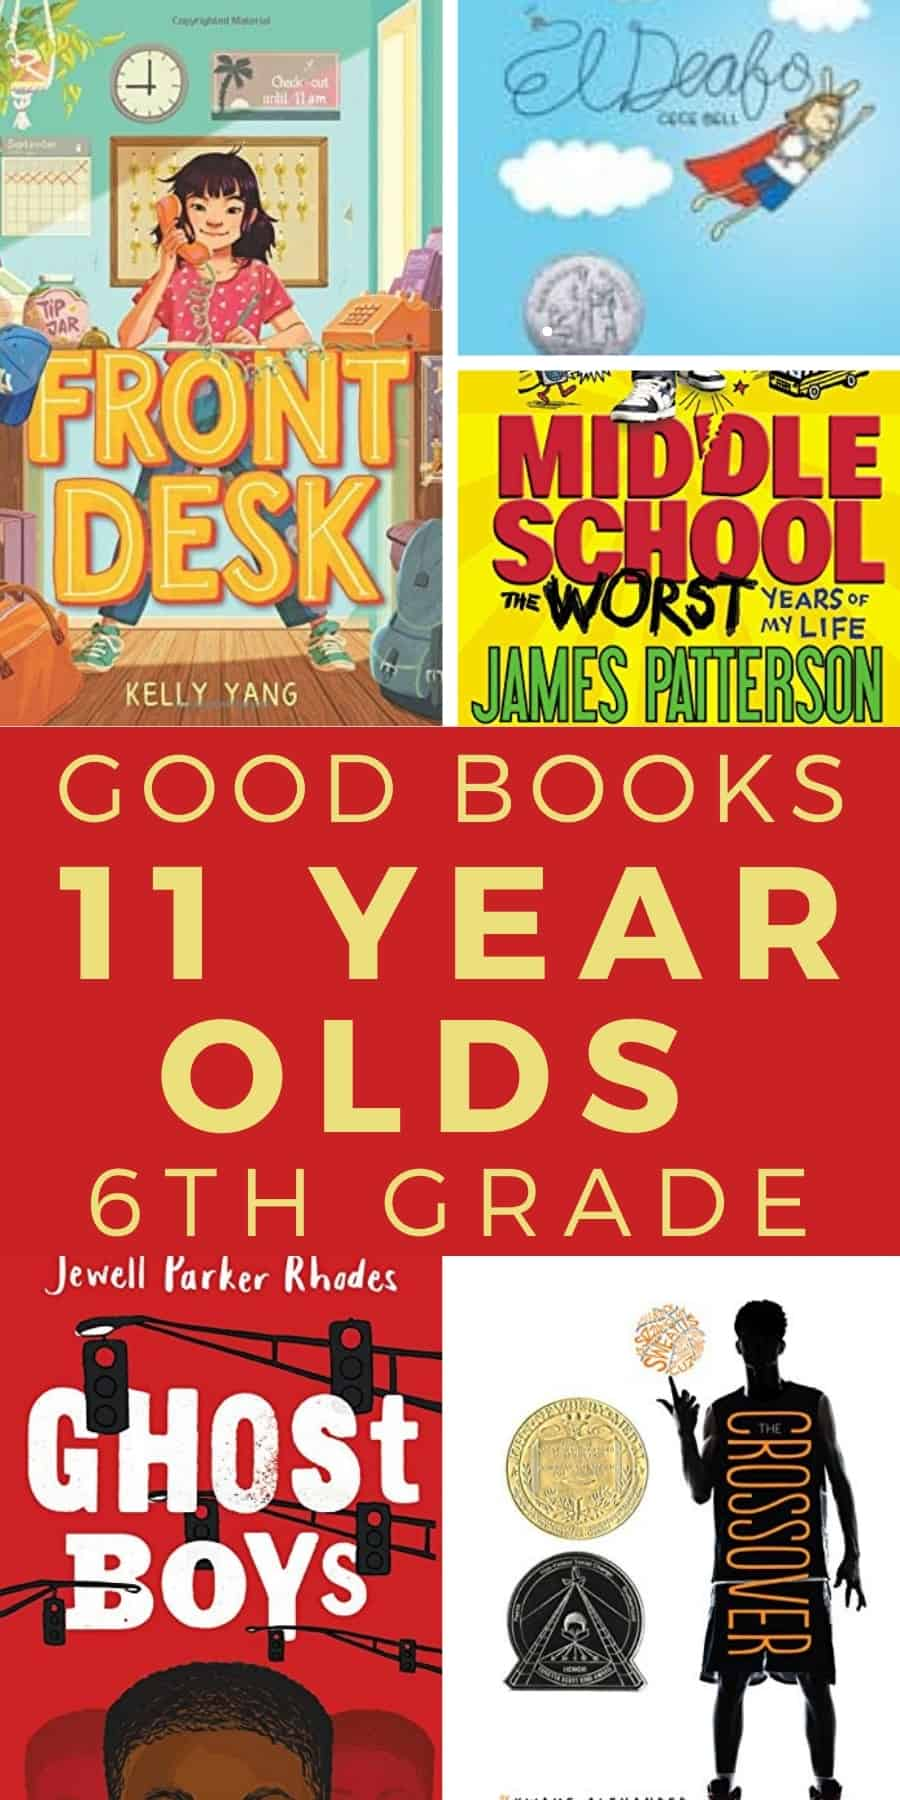 good books for 11 year olds in 6th grade